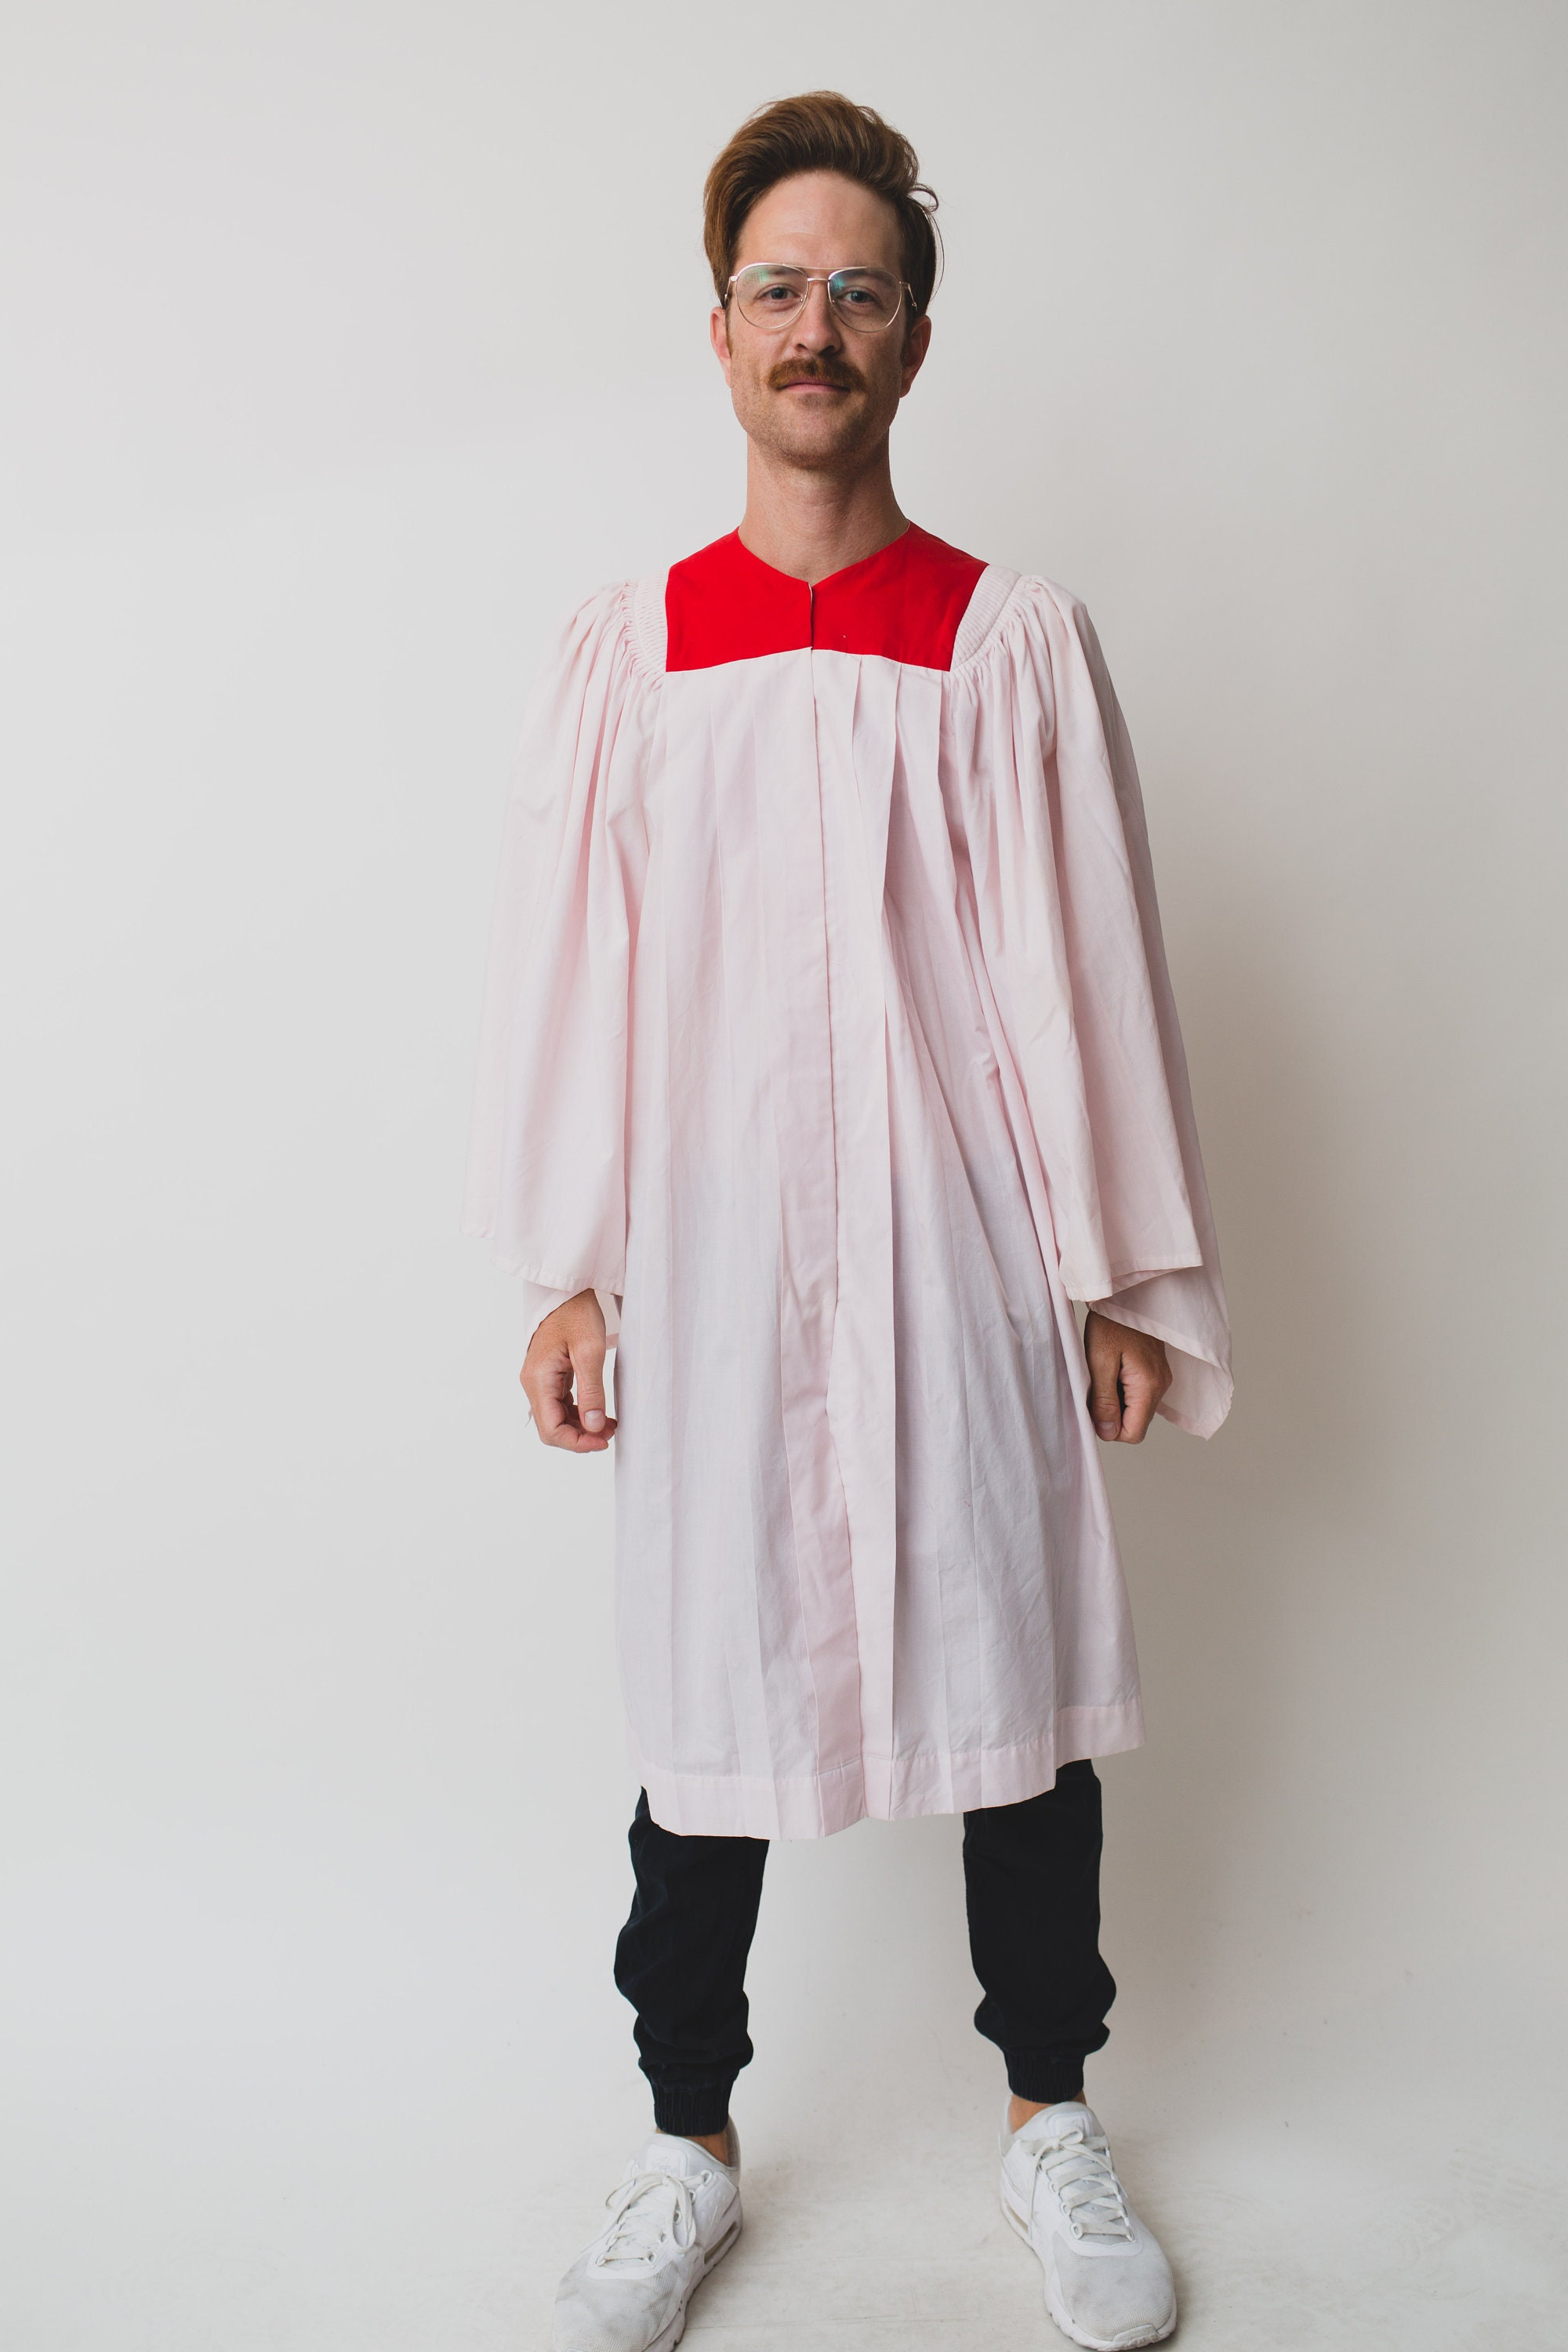 Vintage Men\'s Choir Gown - Pink and Red Graduation Robe